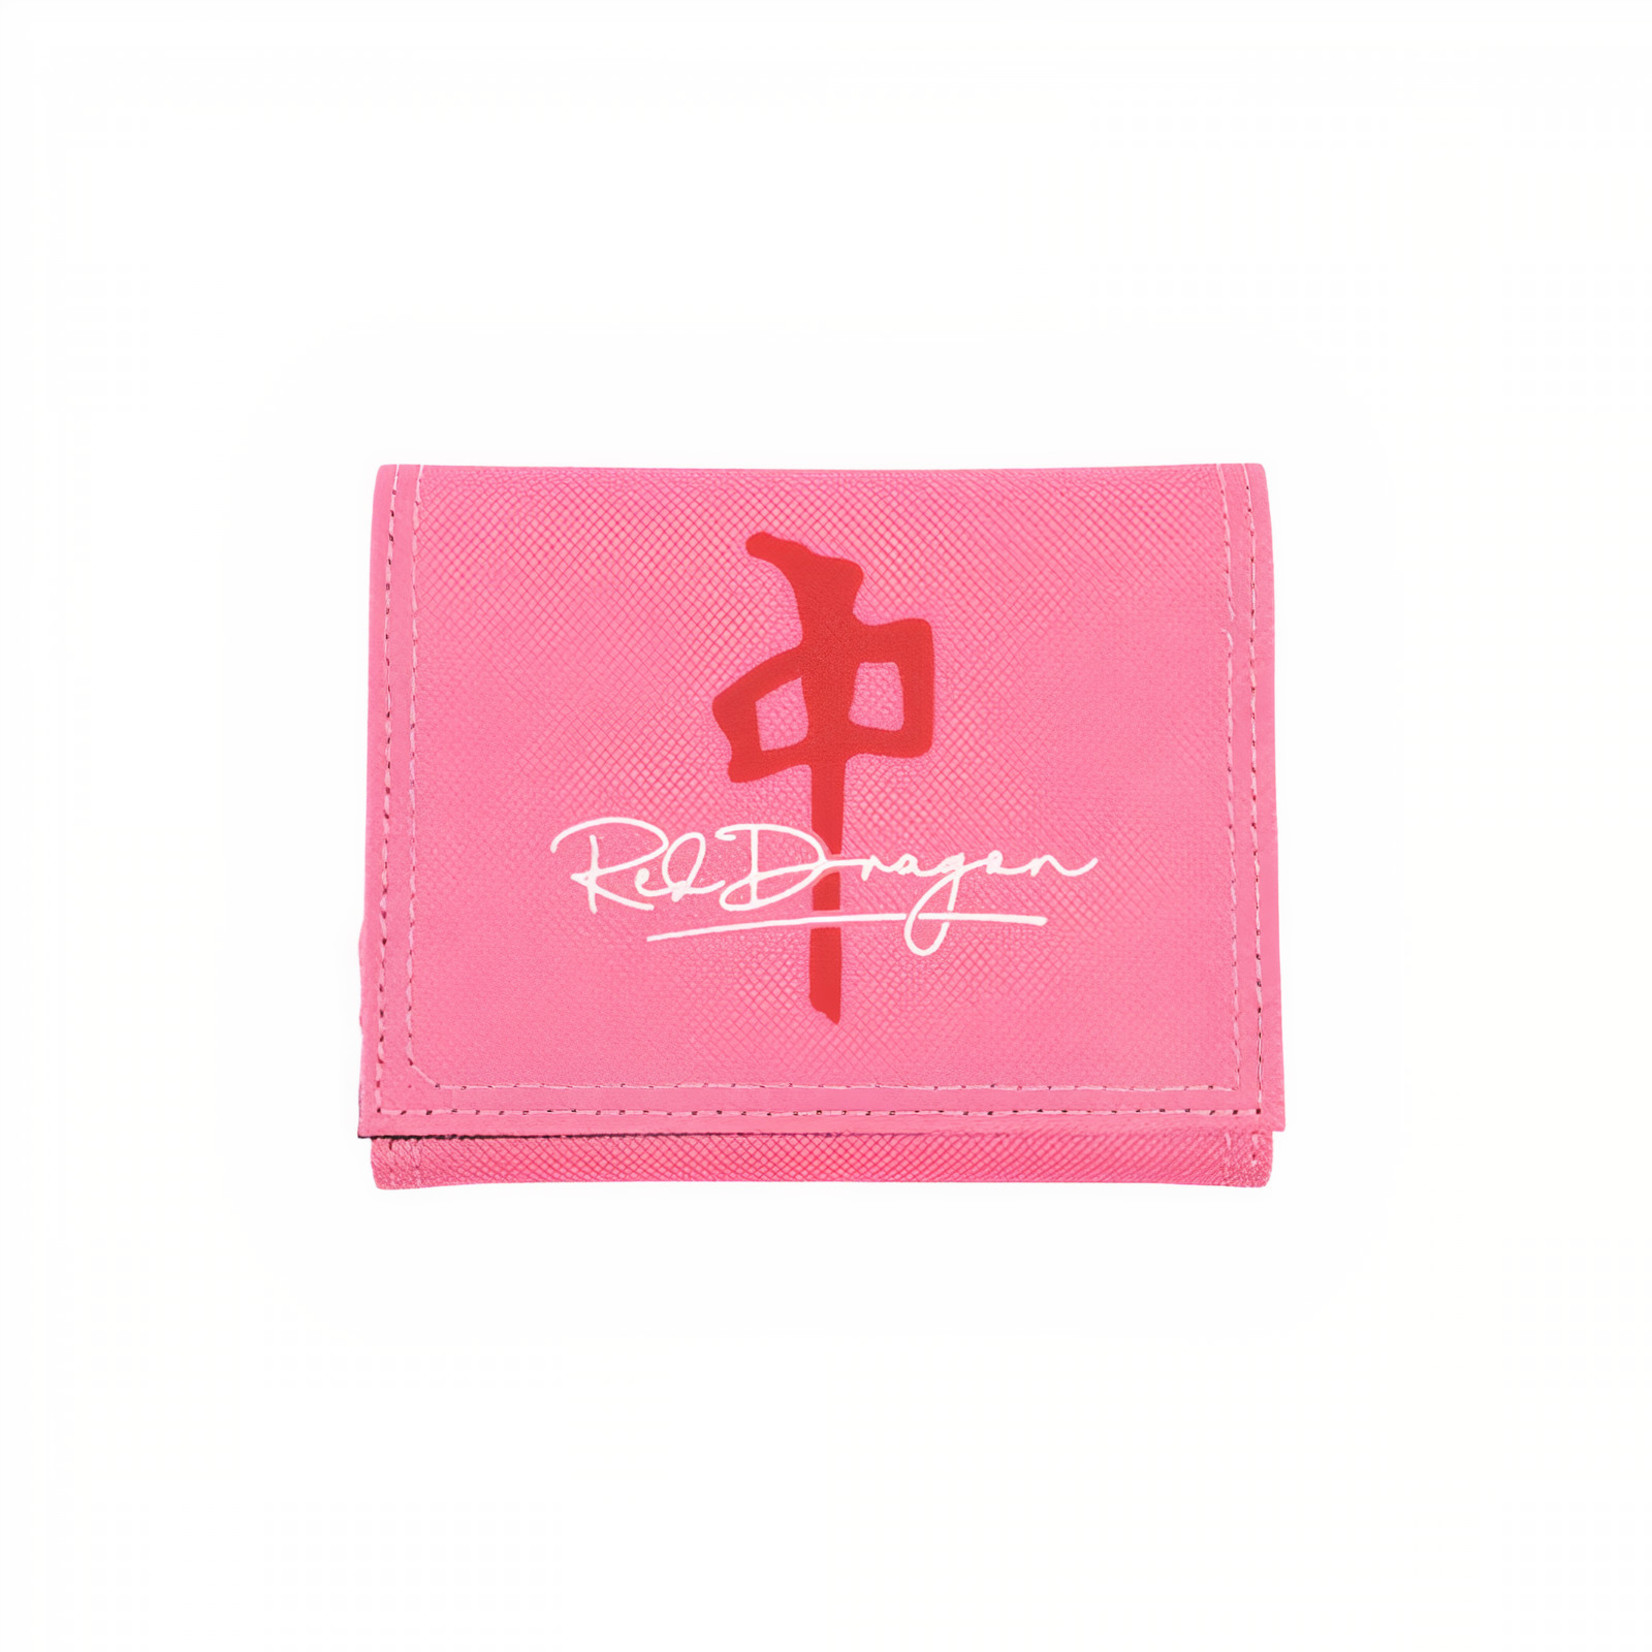 Red Dragon Apparel RDS - Signature Velcro Wallet - Pink